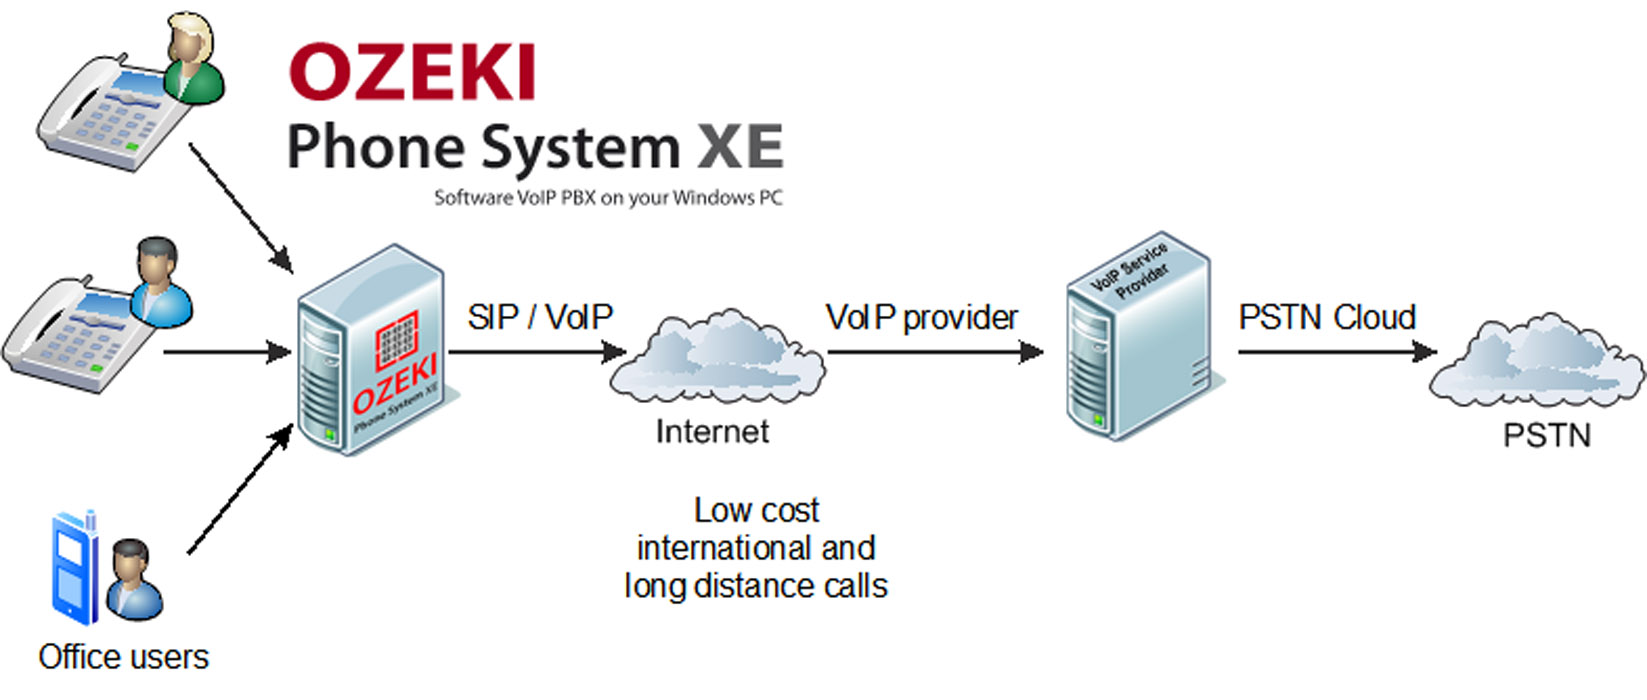 hight resolution of ozeki voip pbx how to connect voip telephone networks to ozeki phone system xe